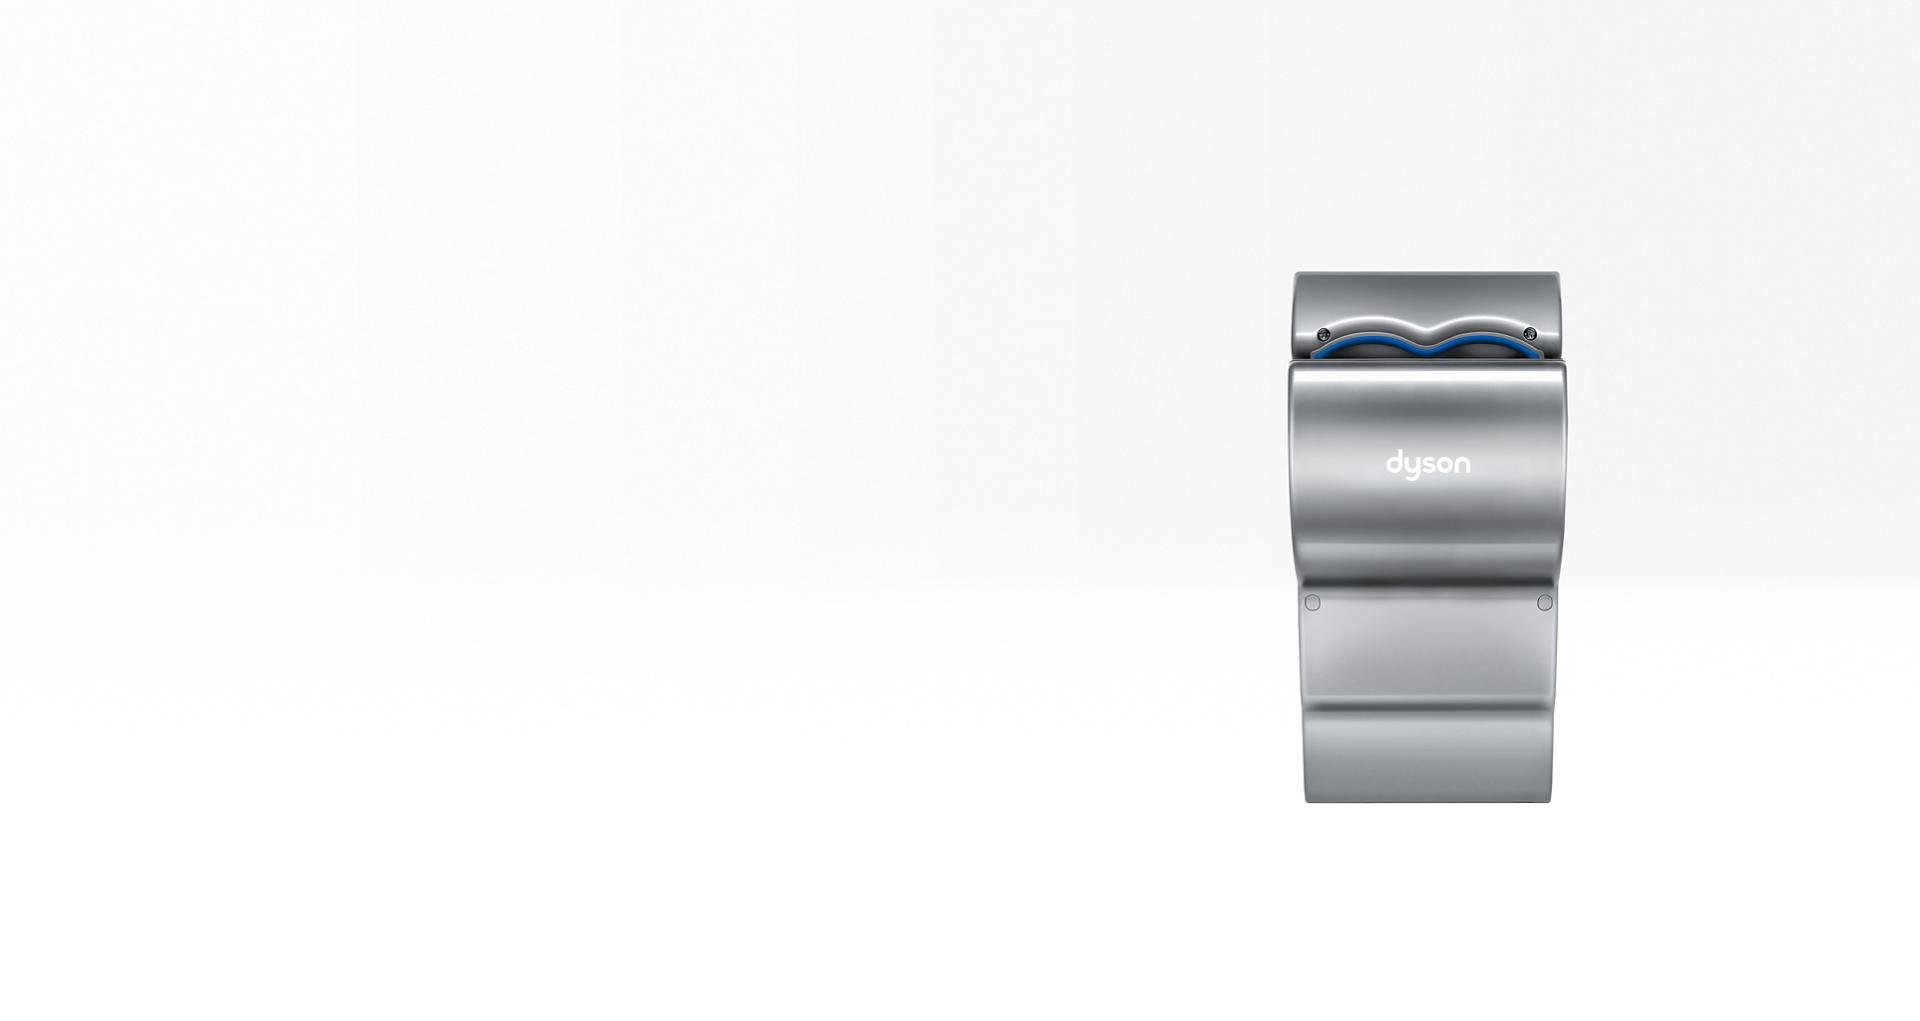 Dyson Airblade dB grey hand dryer